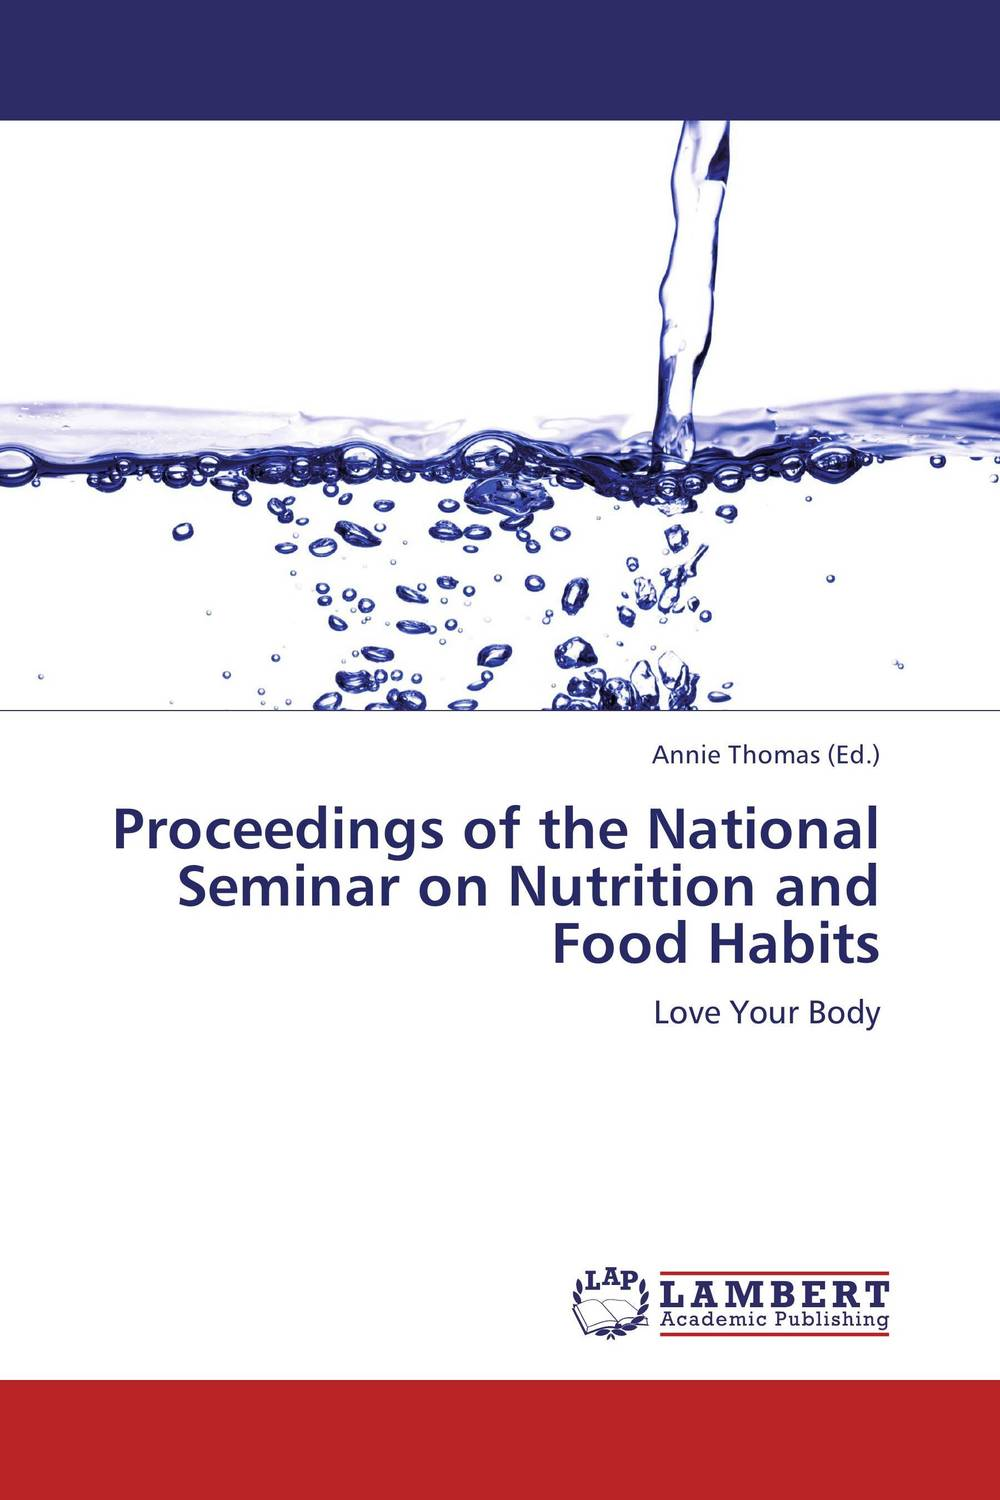 Proceedings of the National Seminar on Nutrition and Food Habits